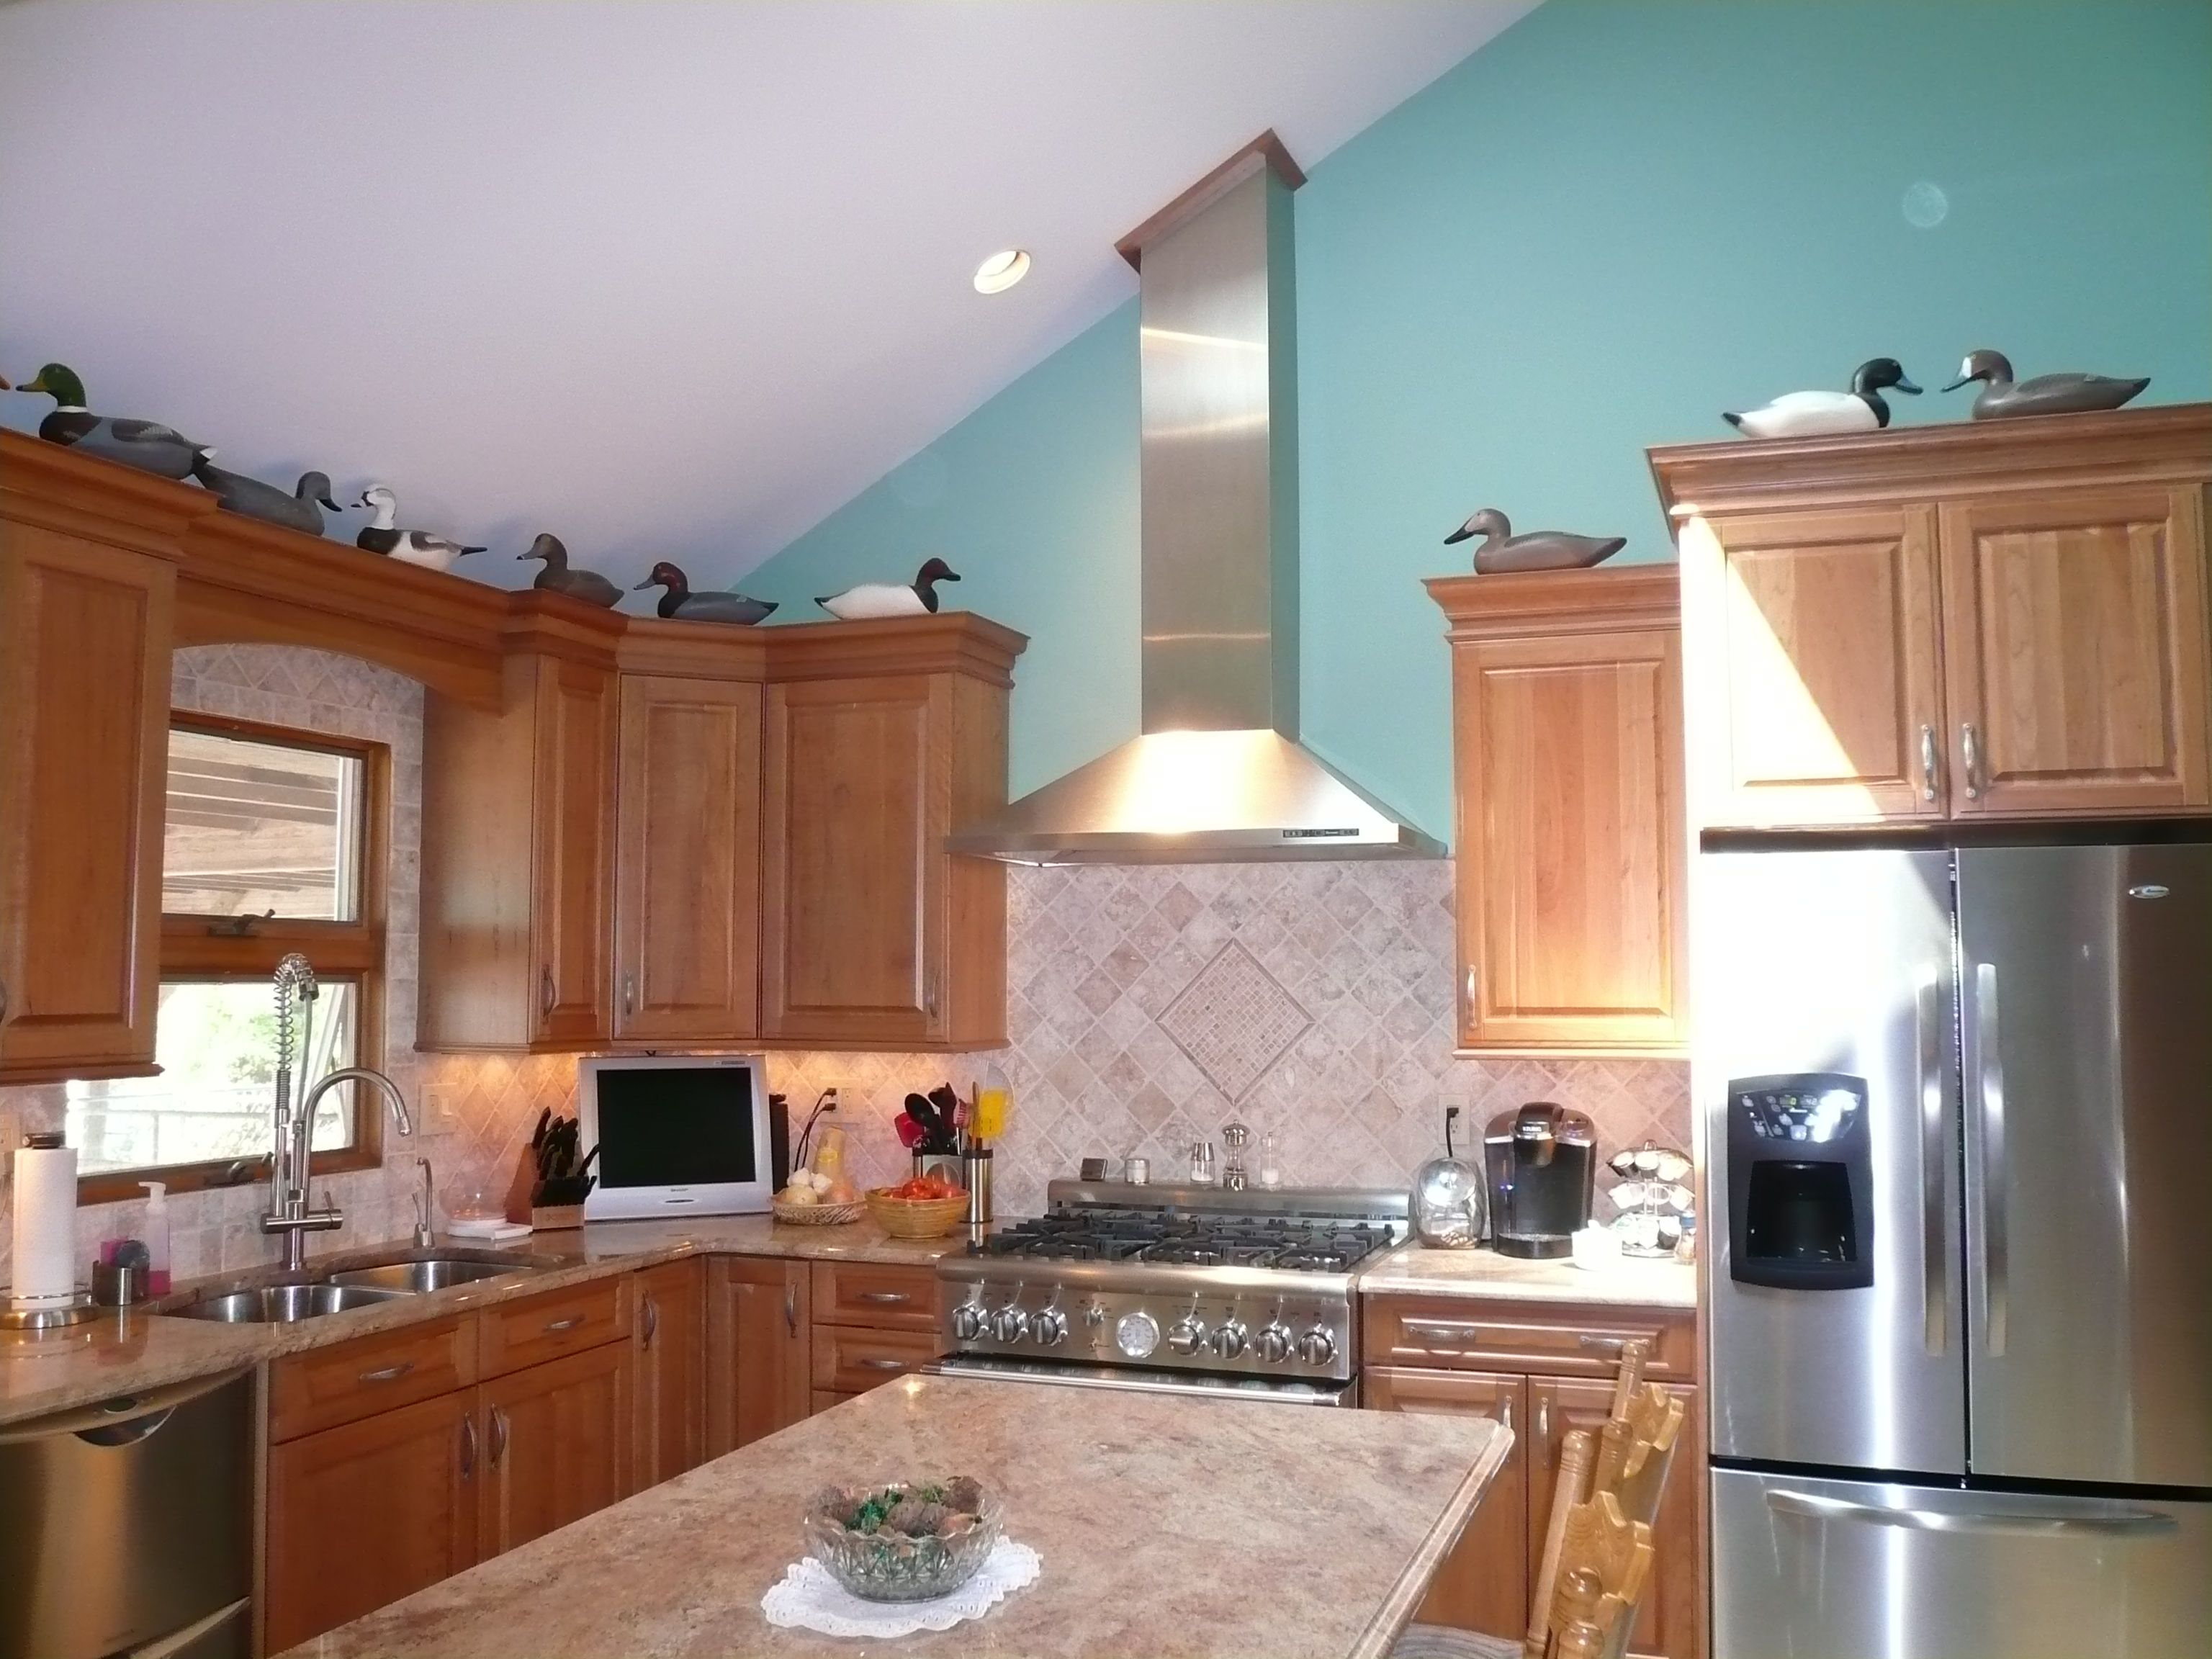 Kitchen With Vaulted Ceilings Care Is Needed When Dealing With A Cathedral Ceiling Note The